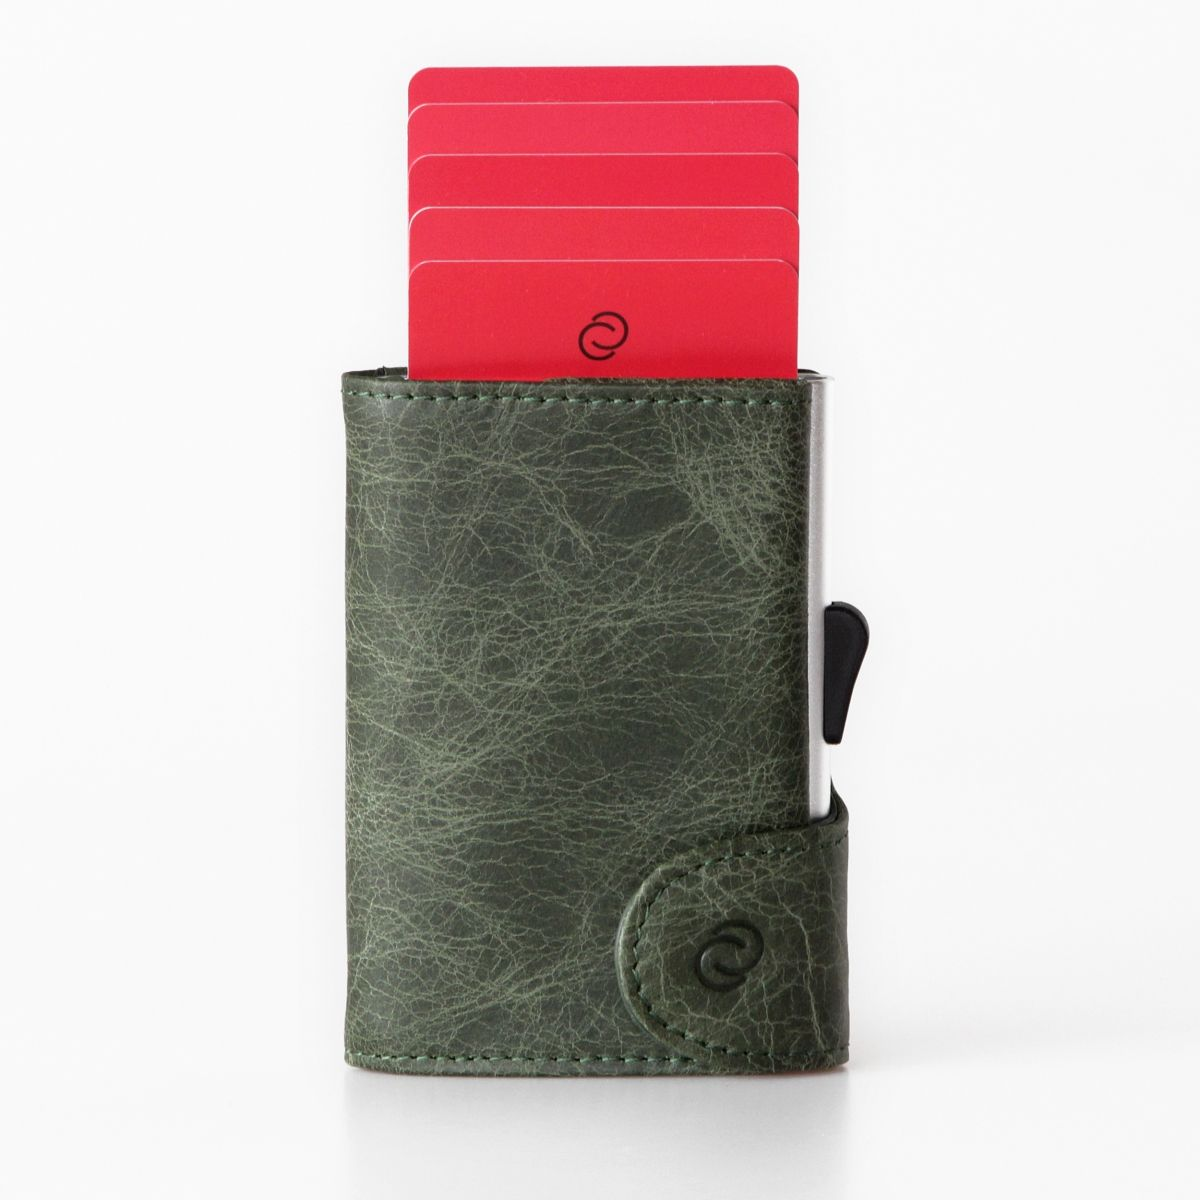 Aluminum Card Holder with Genuine Leather and Coin Pouch - Green